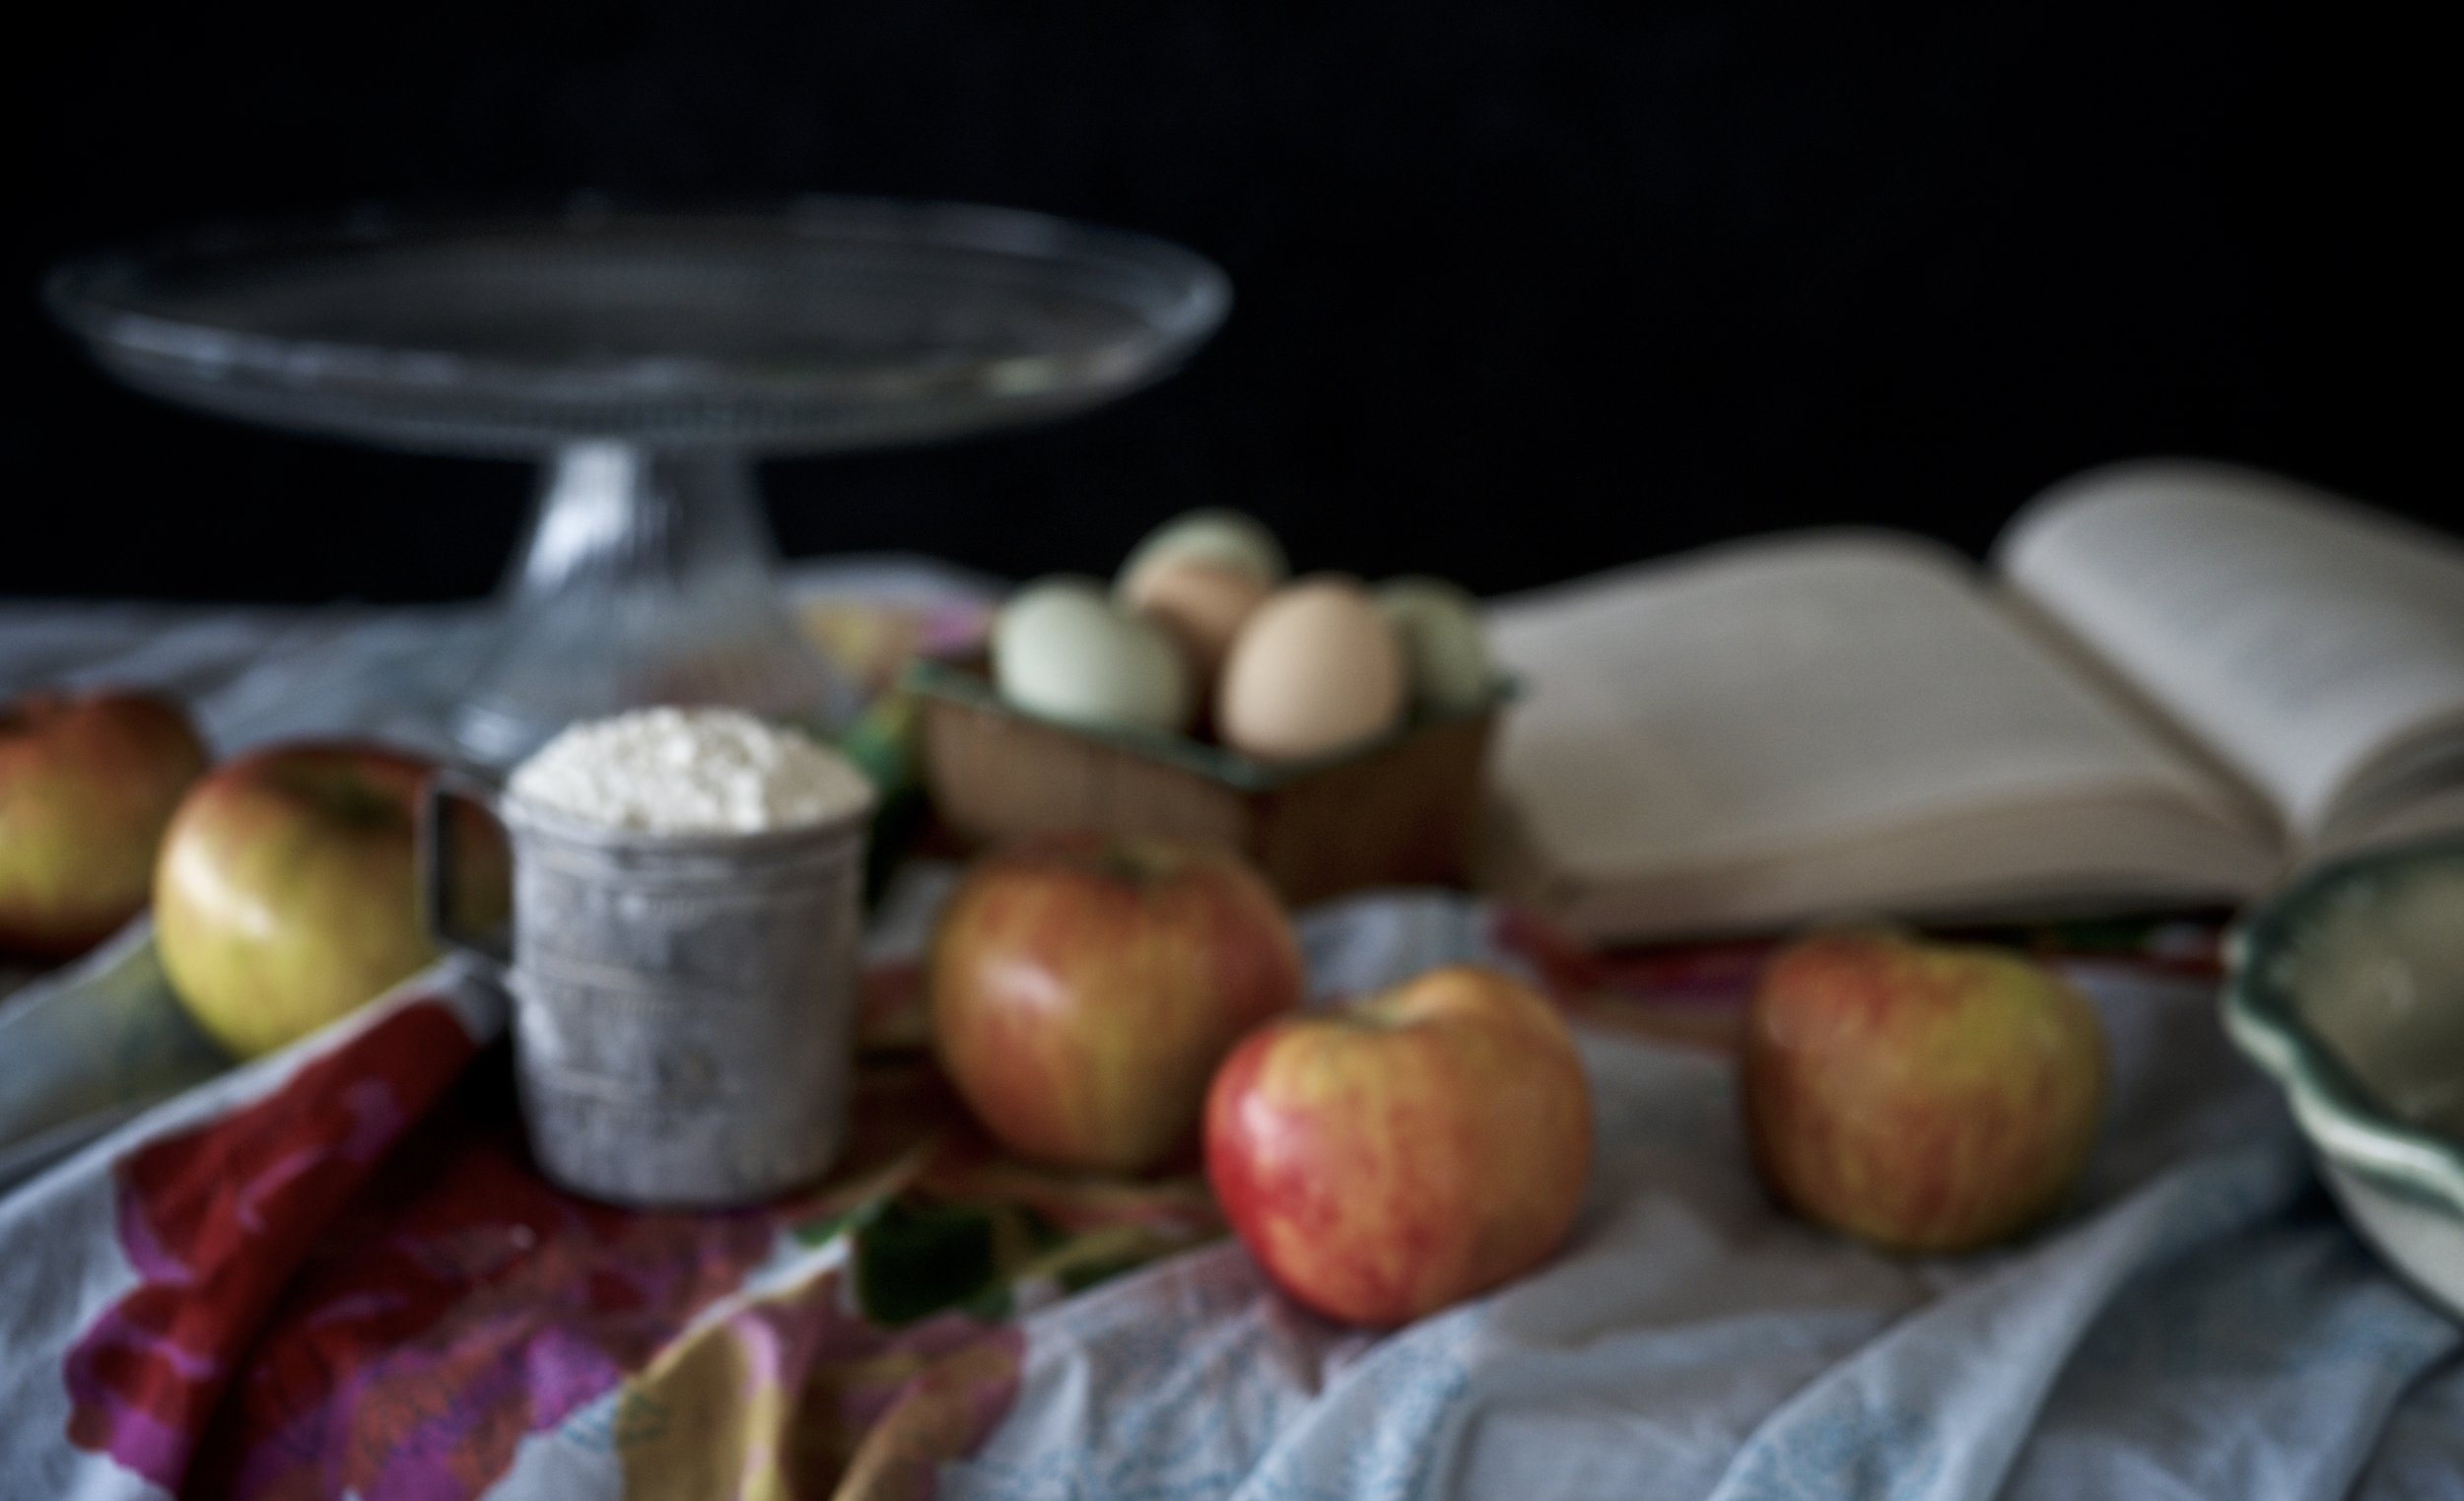 Apple Pie Still Life, Version 1